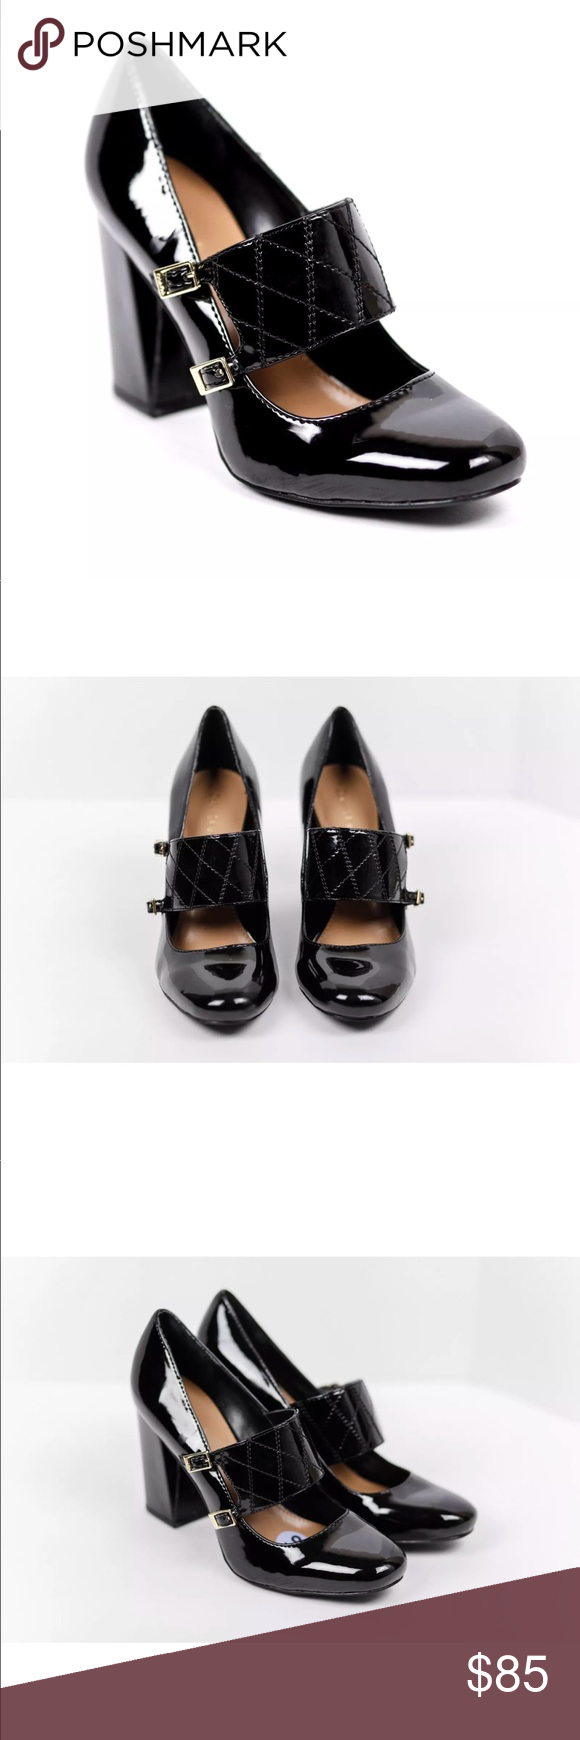 31ff2eb96d36 NEW Calvin Klein Casilla Mary Jane Black Pump Heel Calvin Klein Women s  Casilla Closed Toe Mary Jane Black Leather Pumps Heels 10.